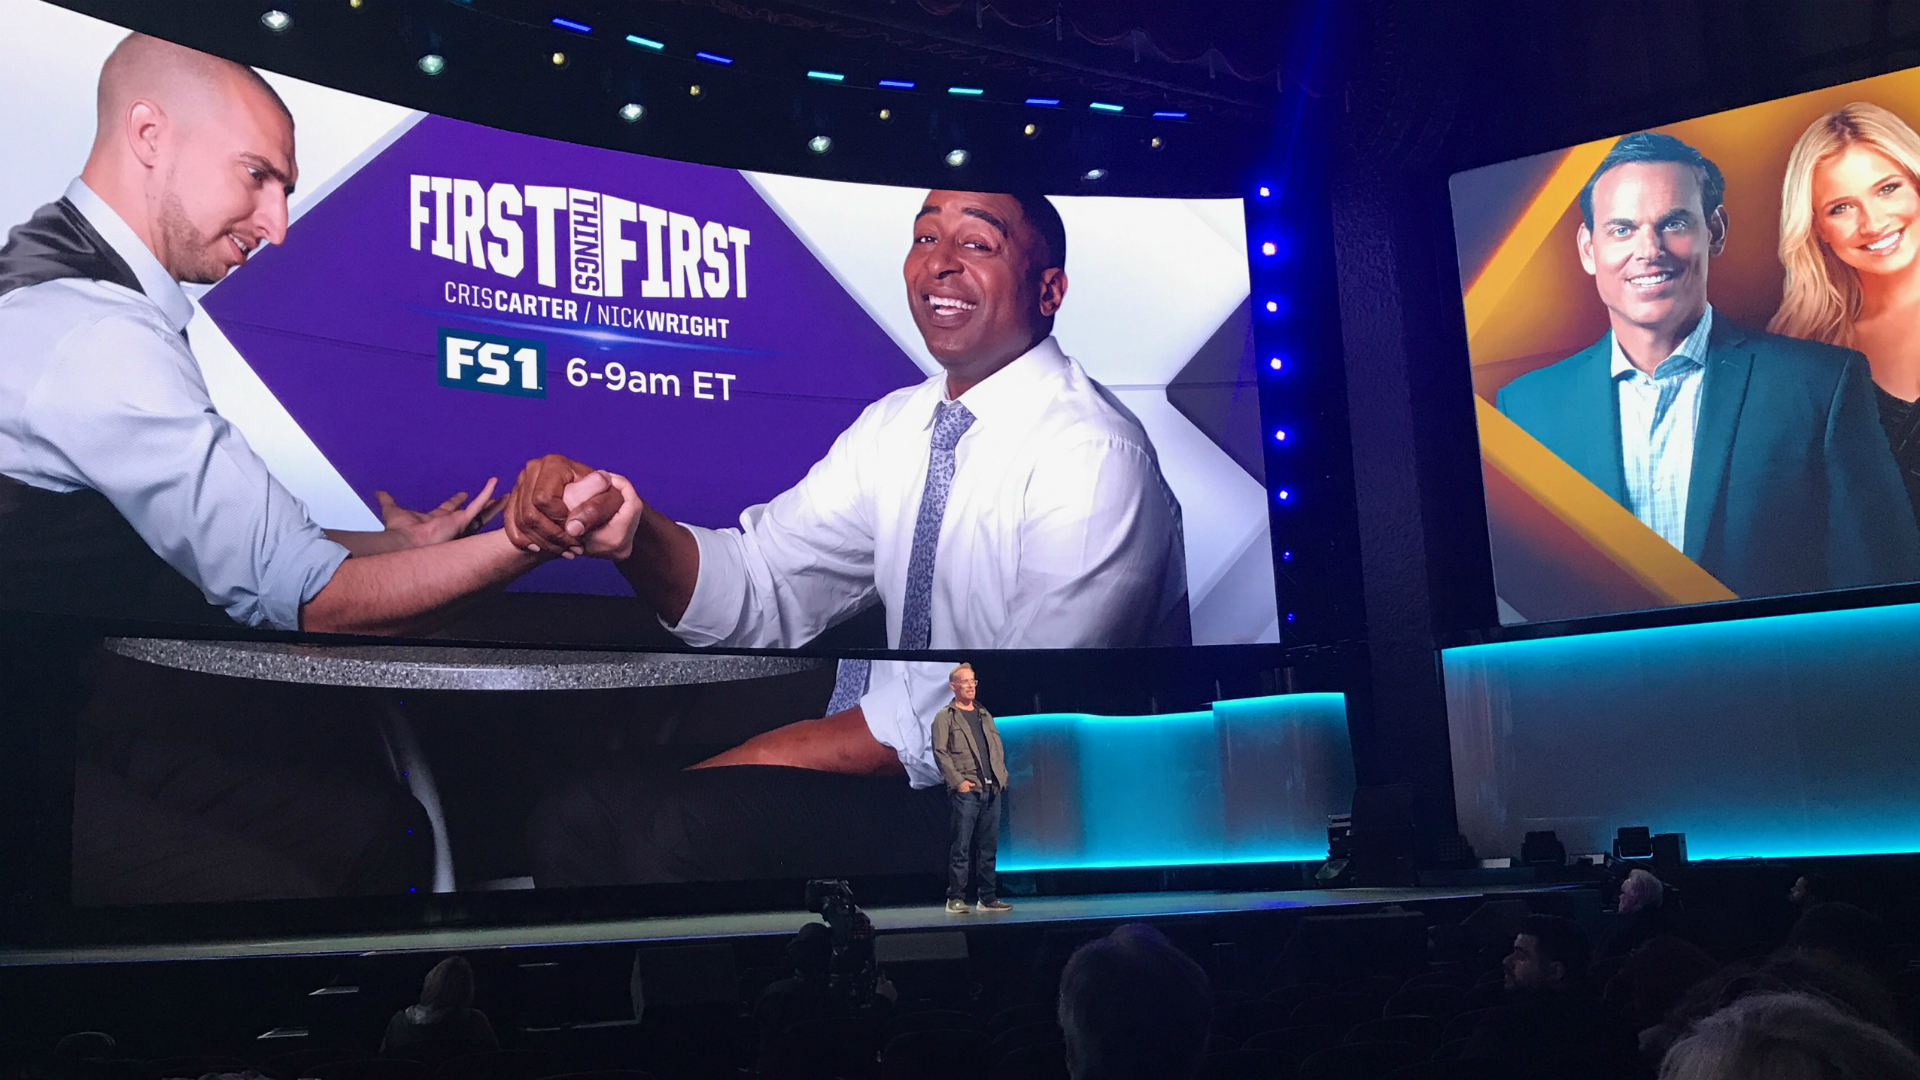 Network announces new shows, lineup for 2018 — ESPN Upfront